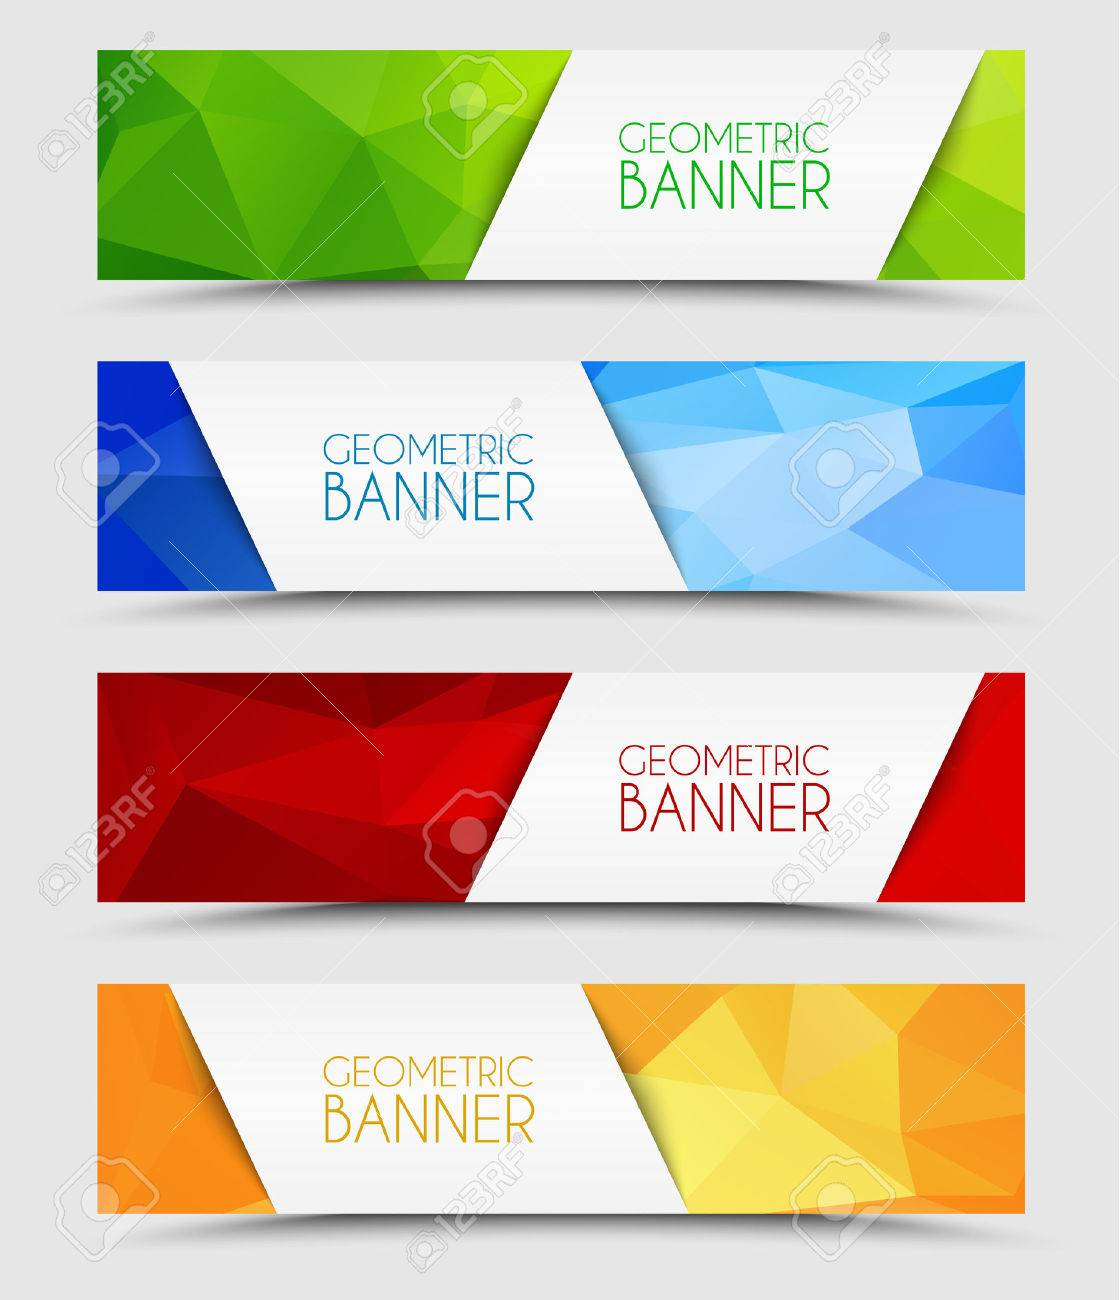 Set of geometric polygonal banner color of green, blue, red and orange - 45113876